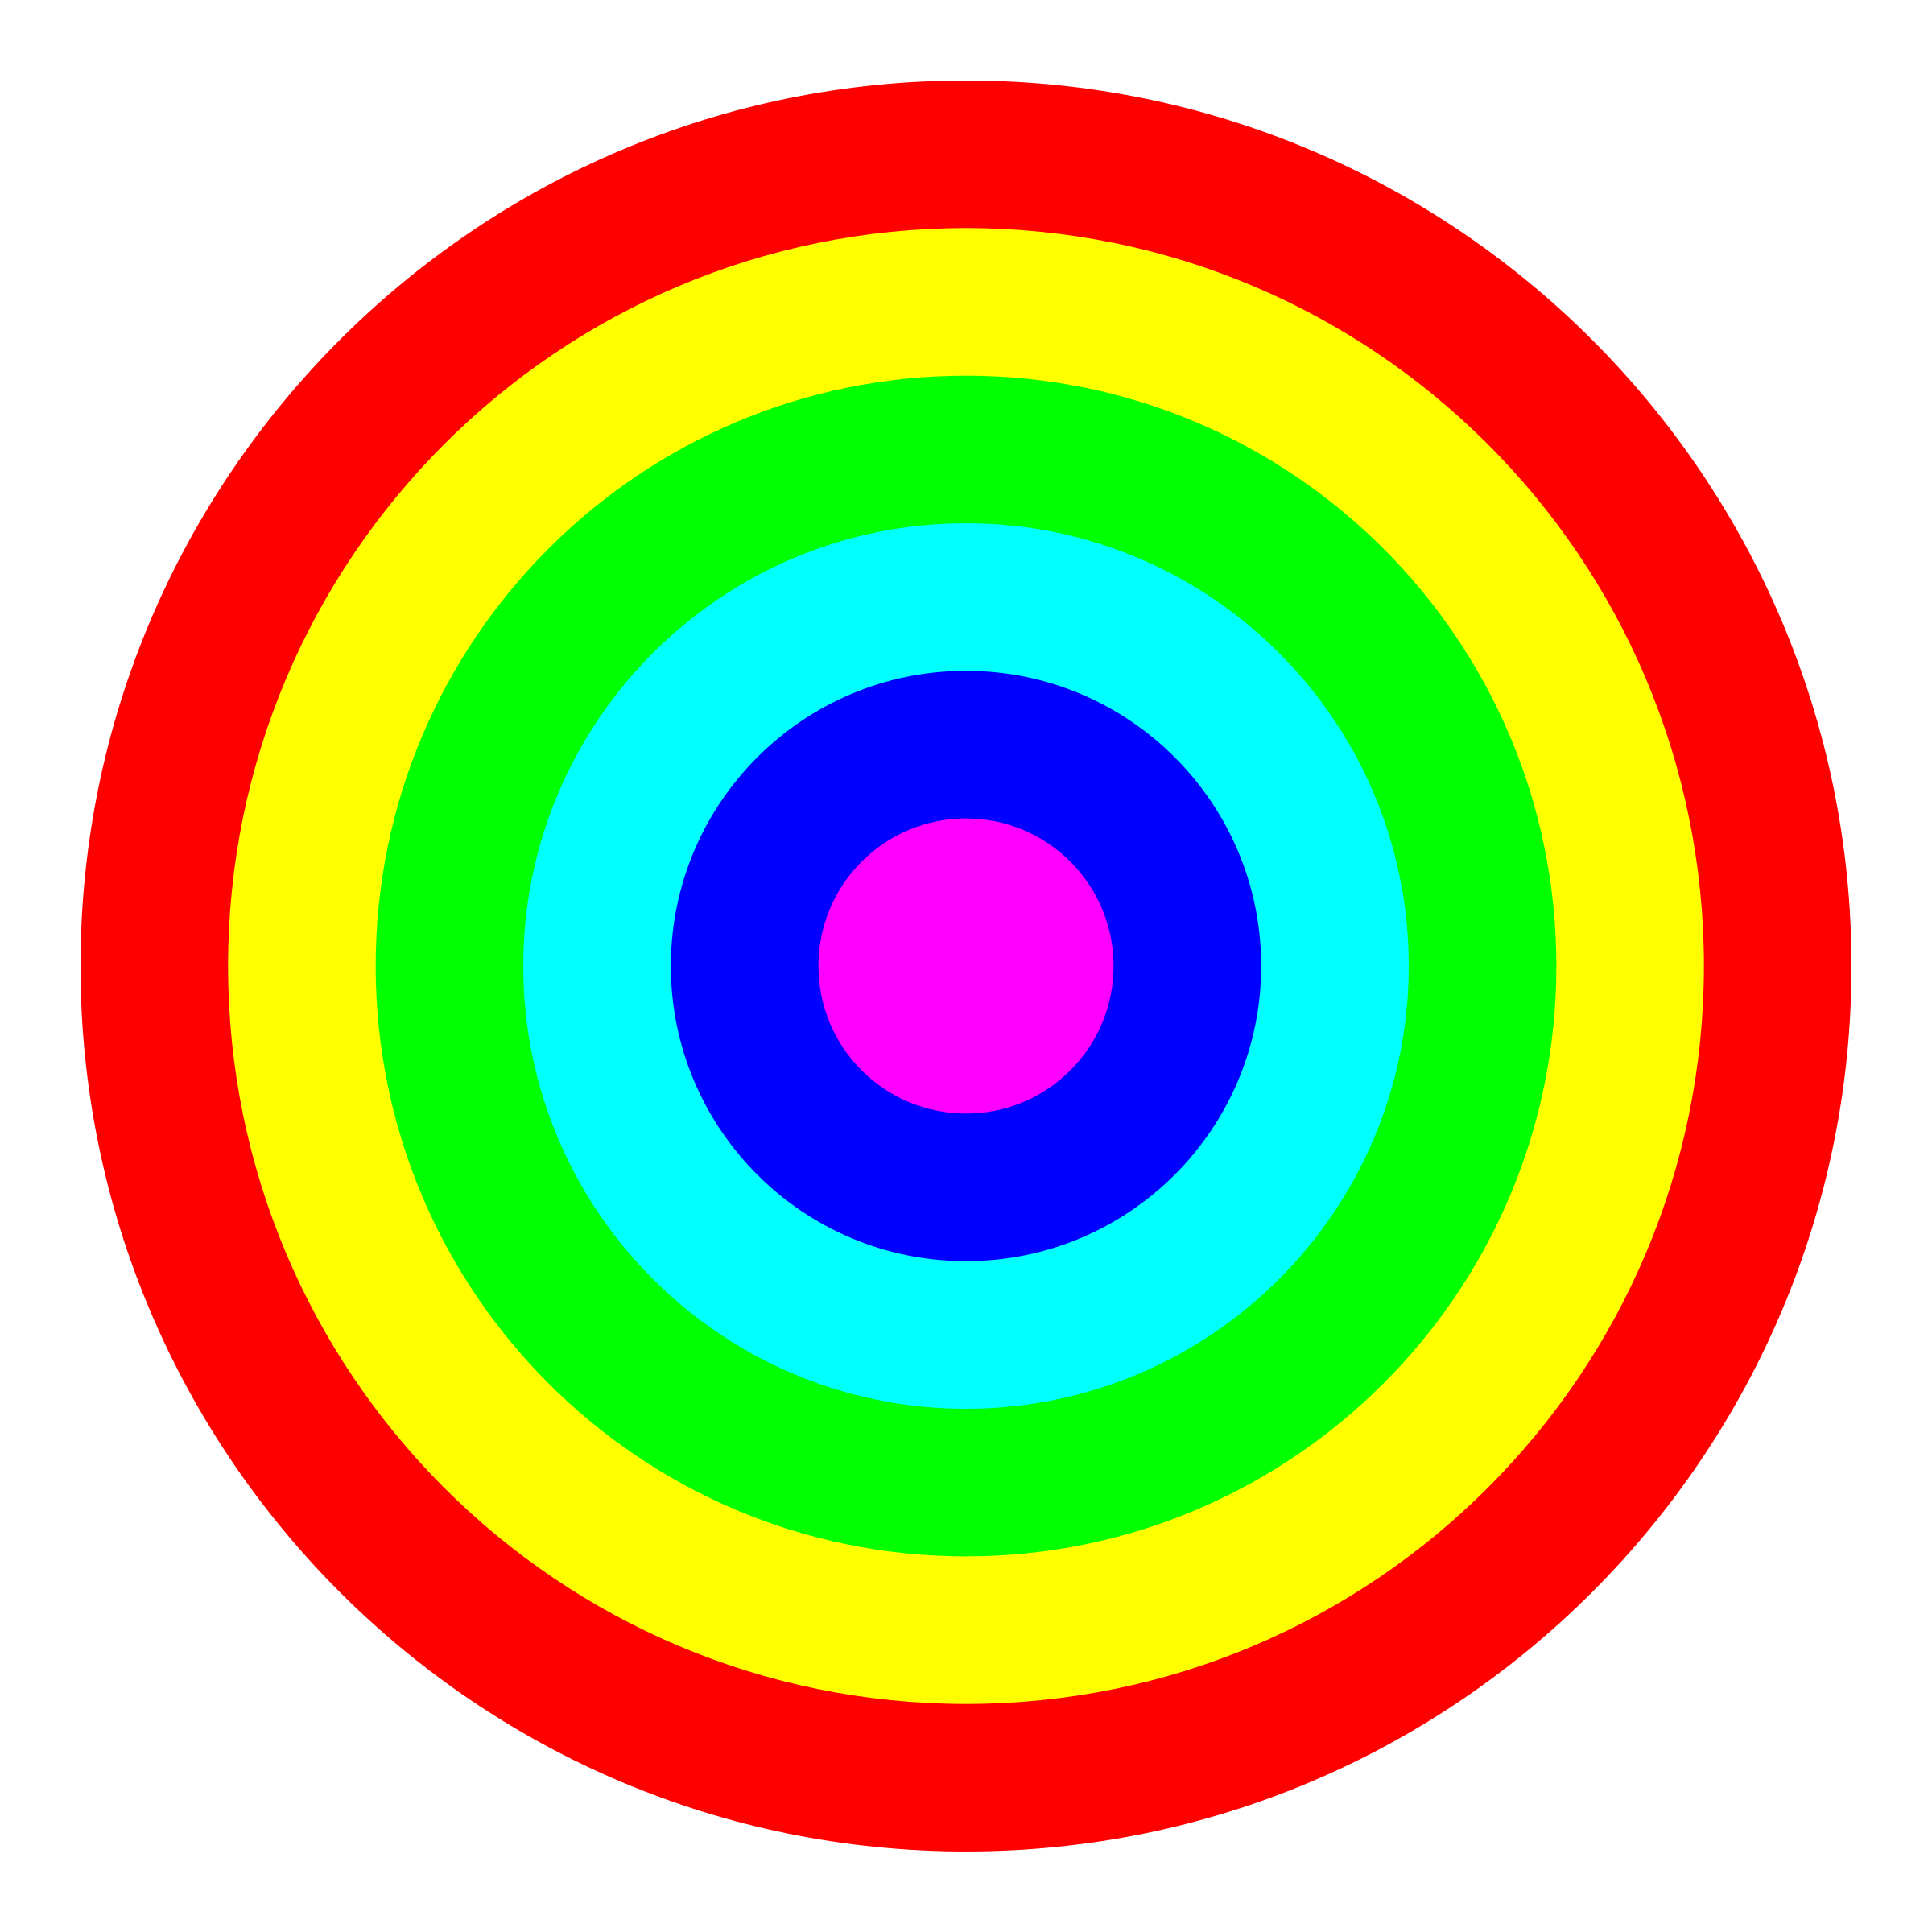 Rainbow Circle Png Rainbow Circle Target 6 Color